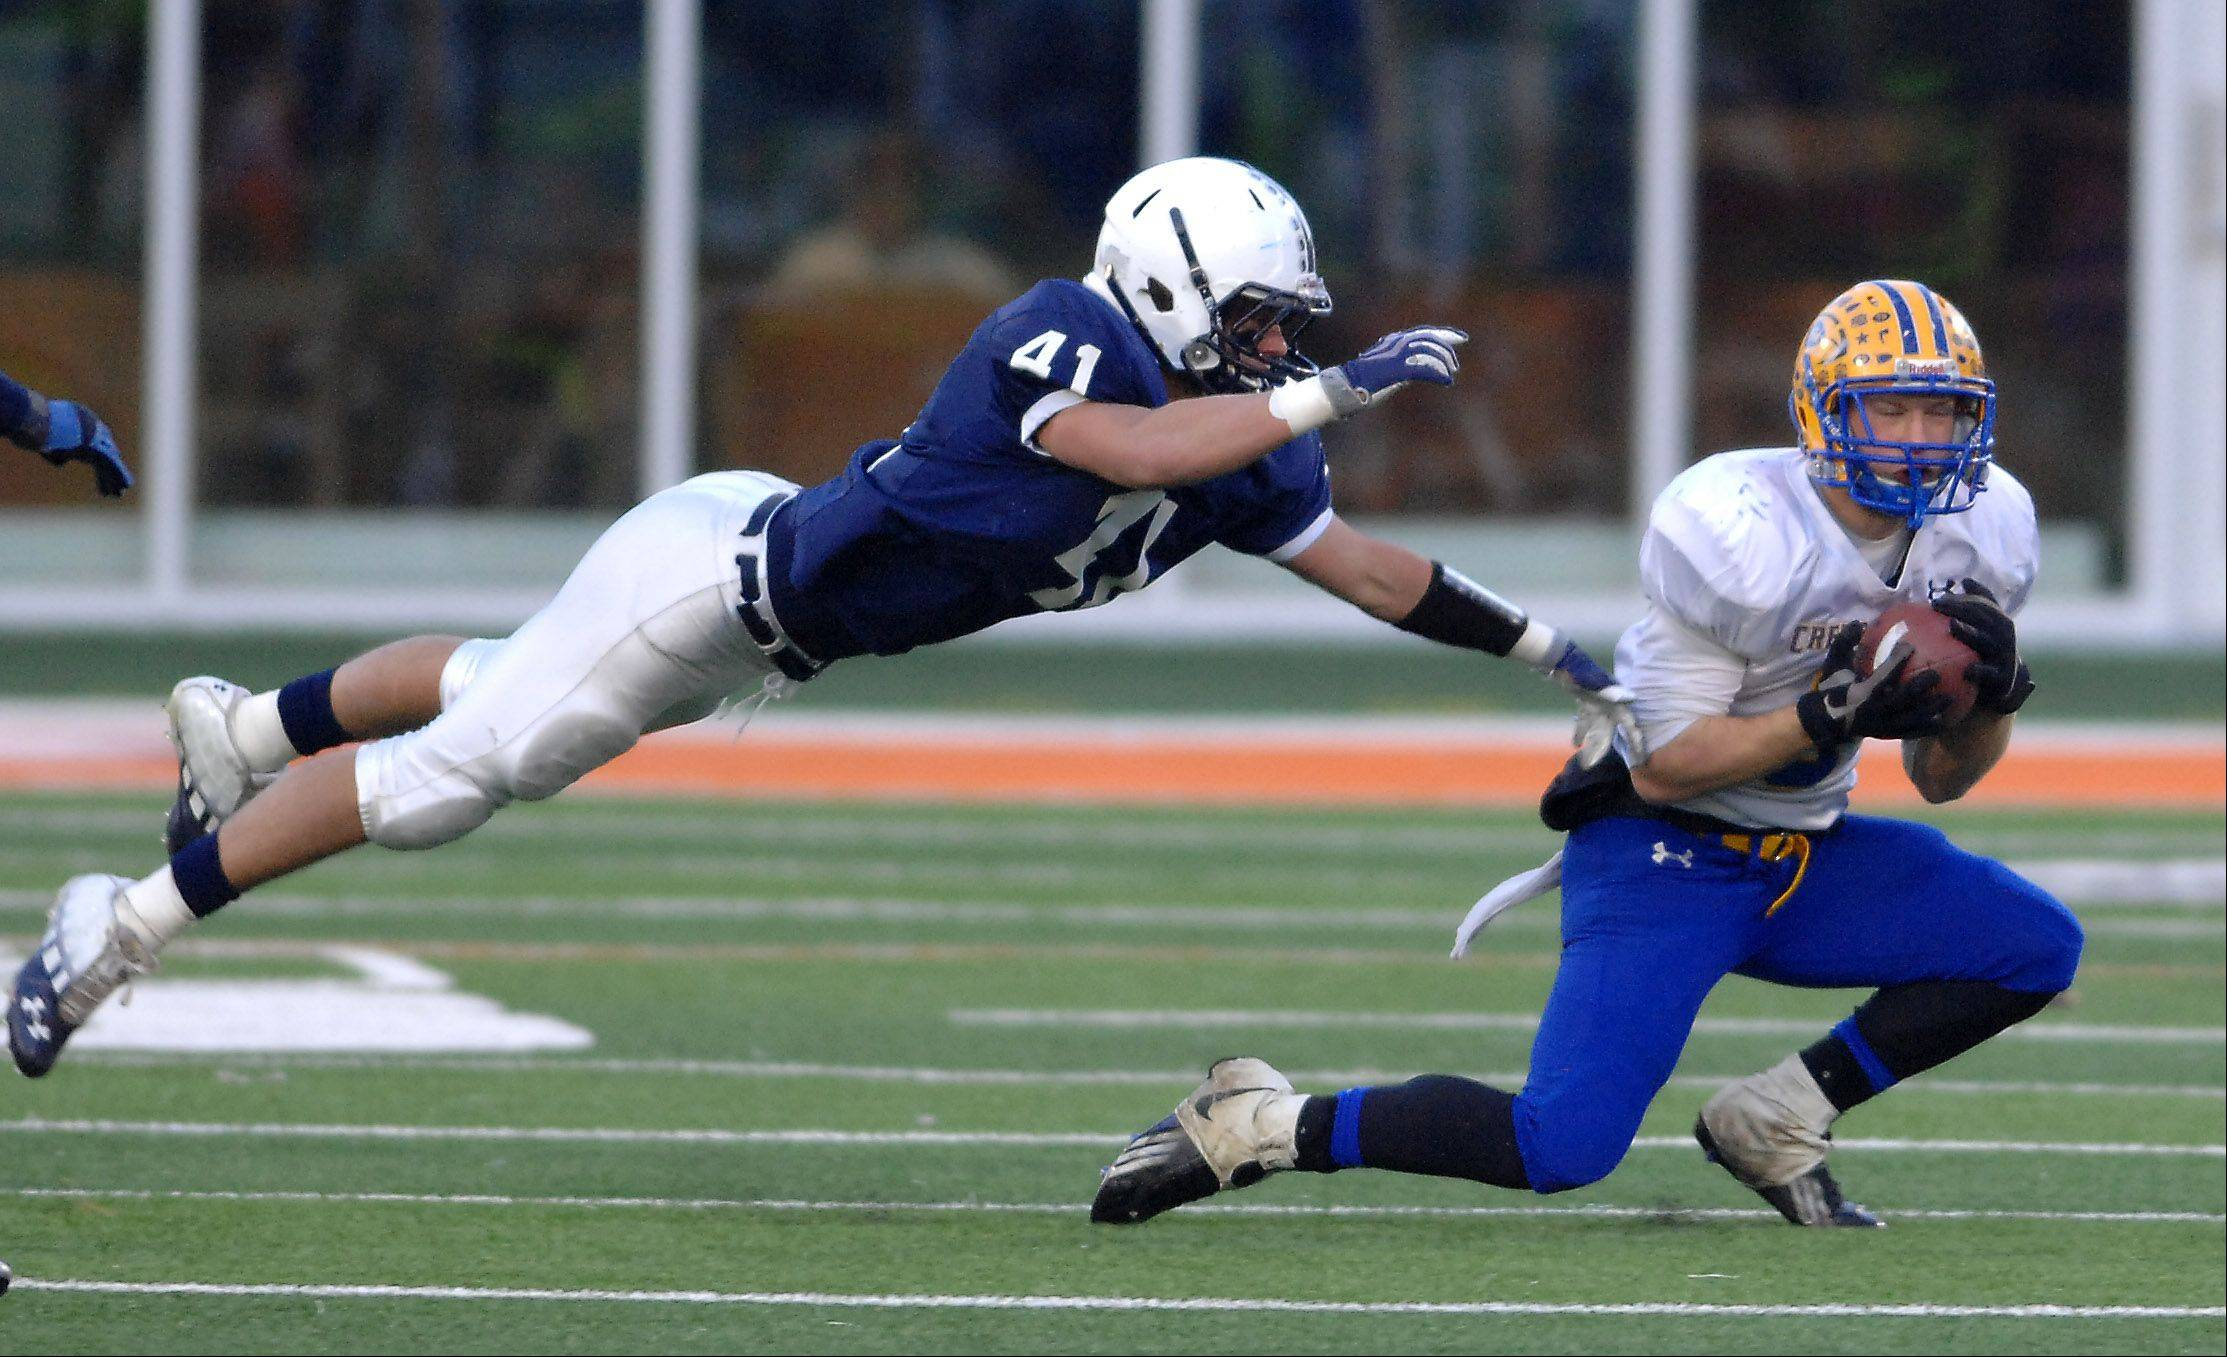 Cary-Grove's Zach Marszal, 41, attempts to break up a Crete-Monee play during Saturday's Class 6A state title game at Memorial Stadium in Champaign.